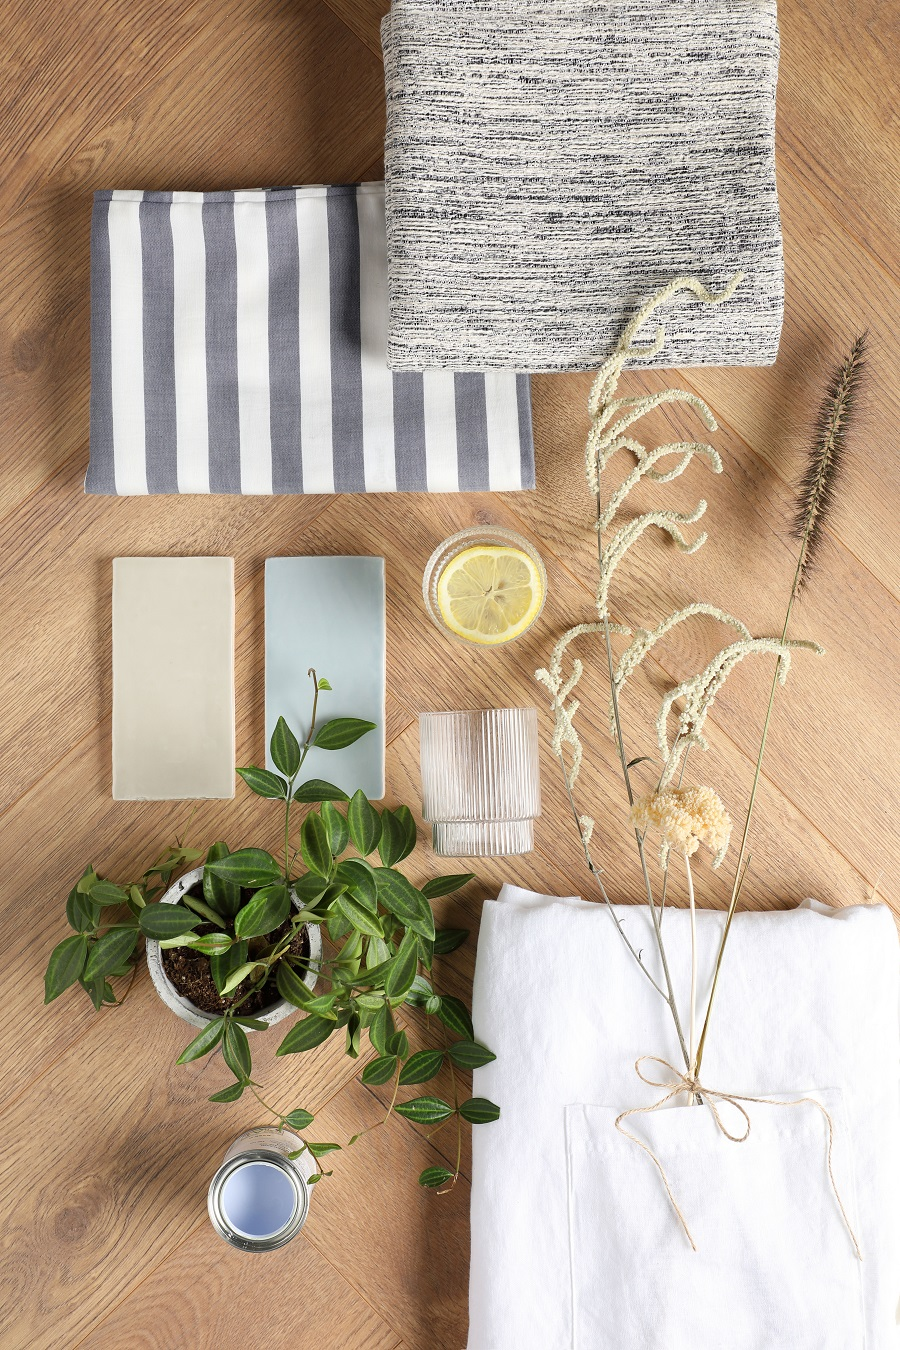 Get Your Home Ready for Spring With These 8 Satisfying Tasks